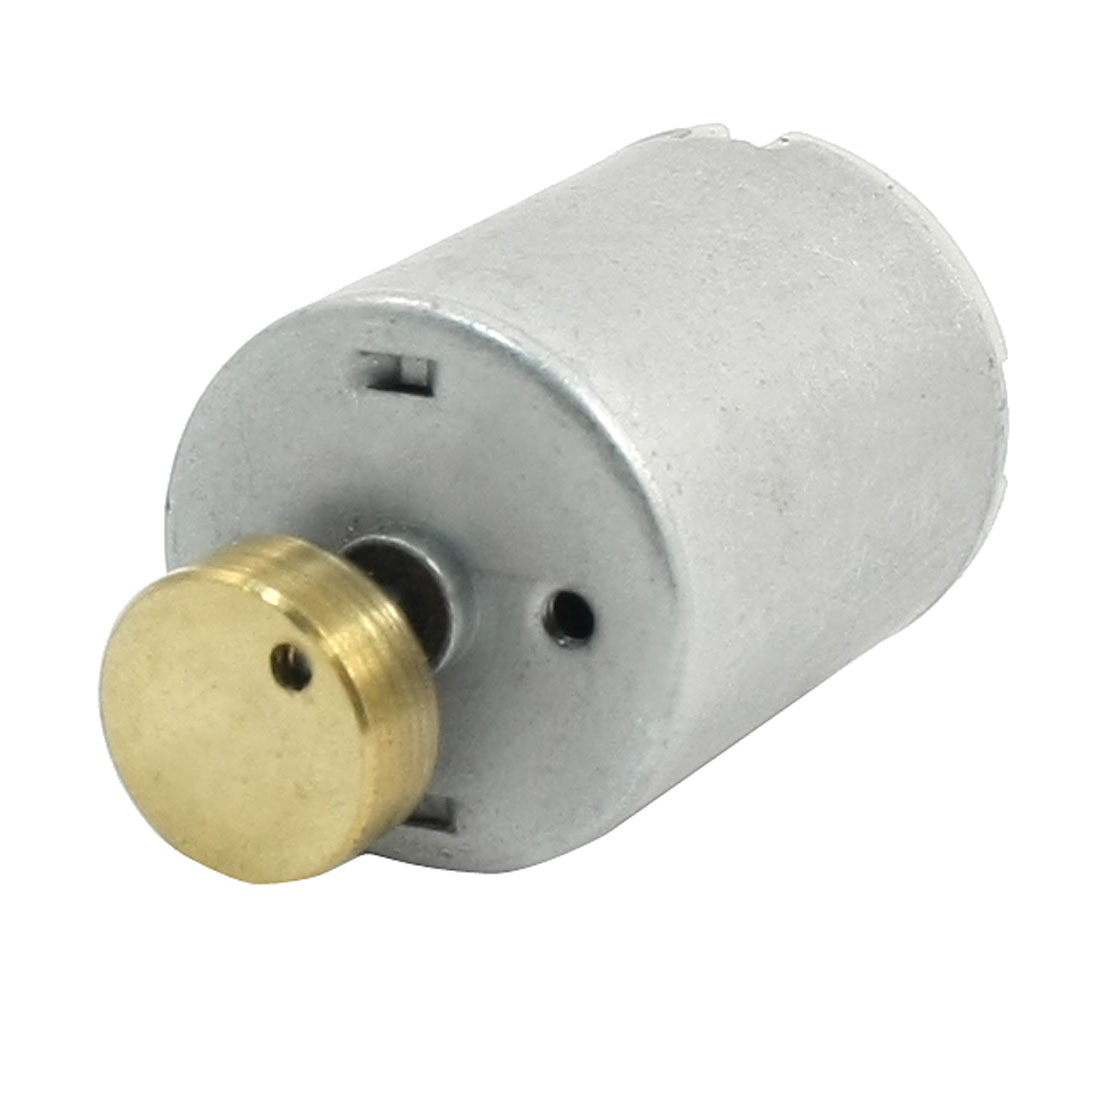 Round-Shaft-11000R-min-Speed-Micro-Vibrating-Vibration-Motor-DC-3-6V